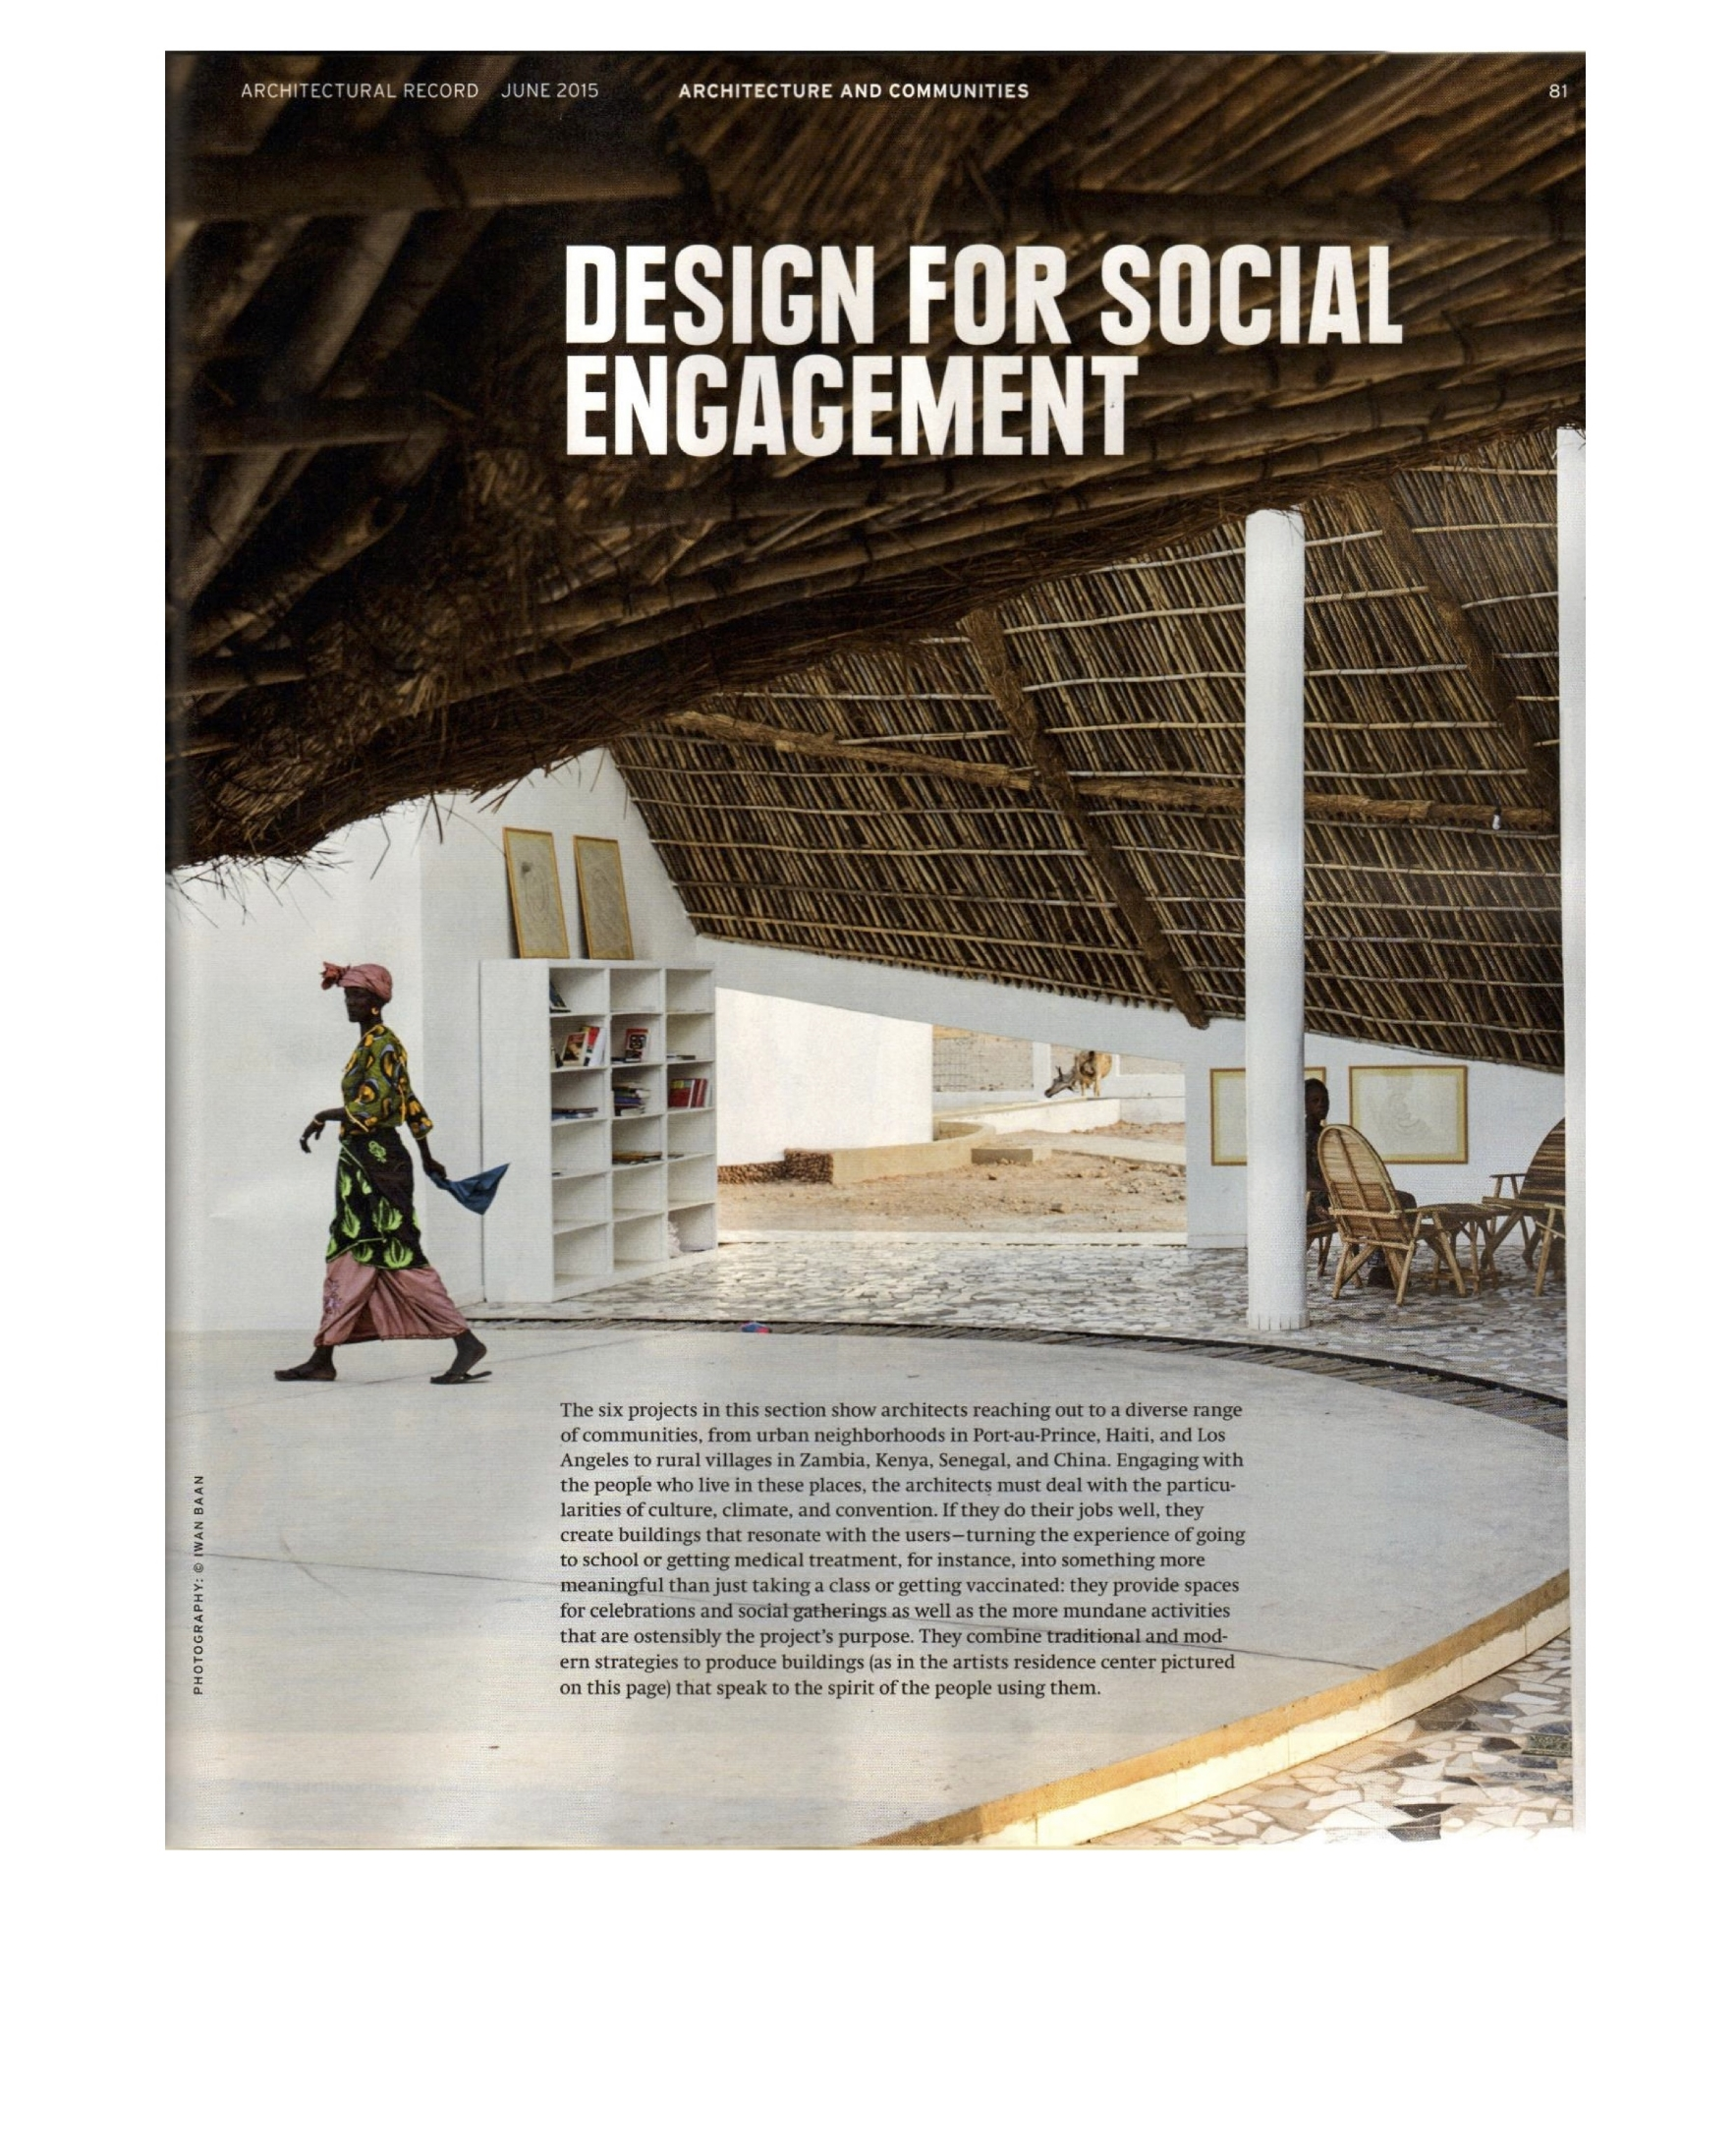 ARCHITECTURAL RECORD JUNE 2015 part 1.jpg